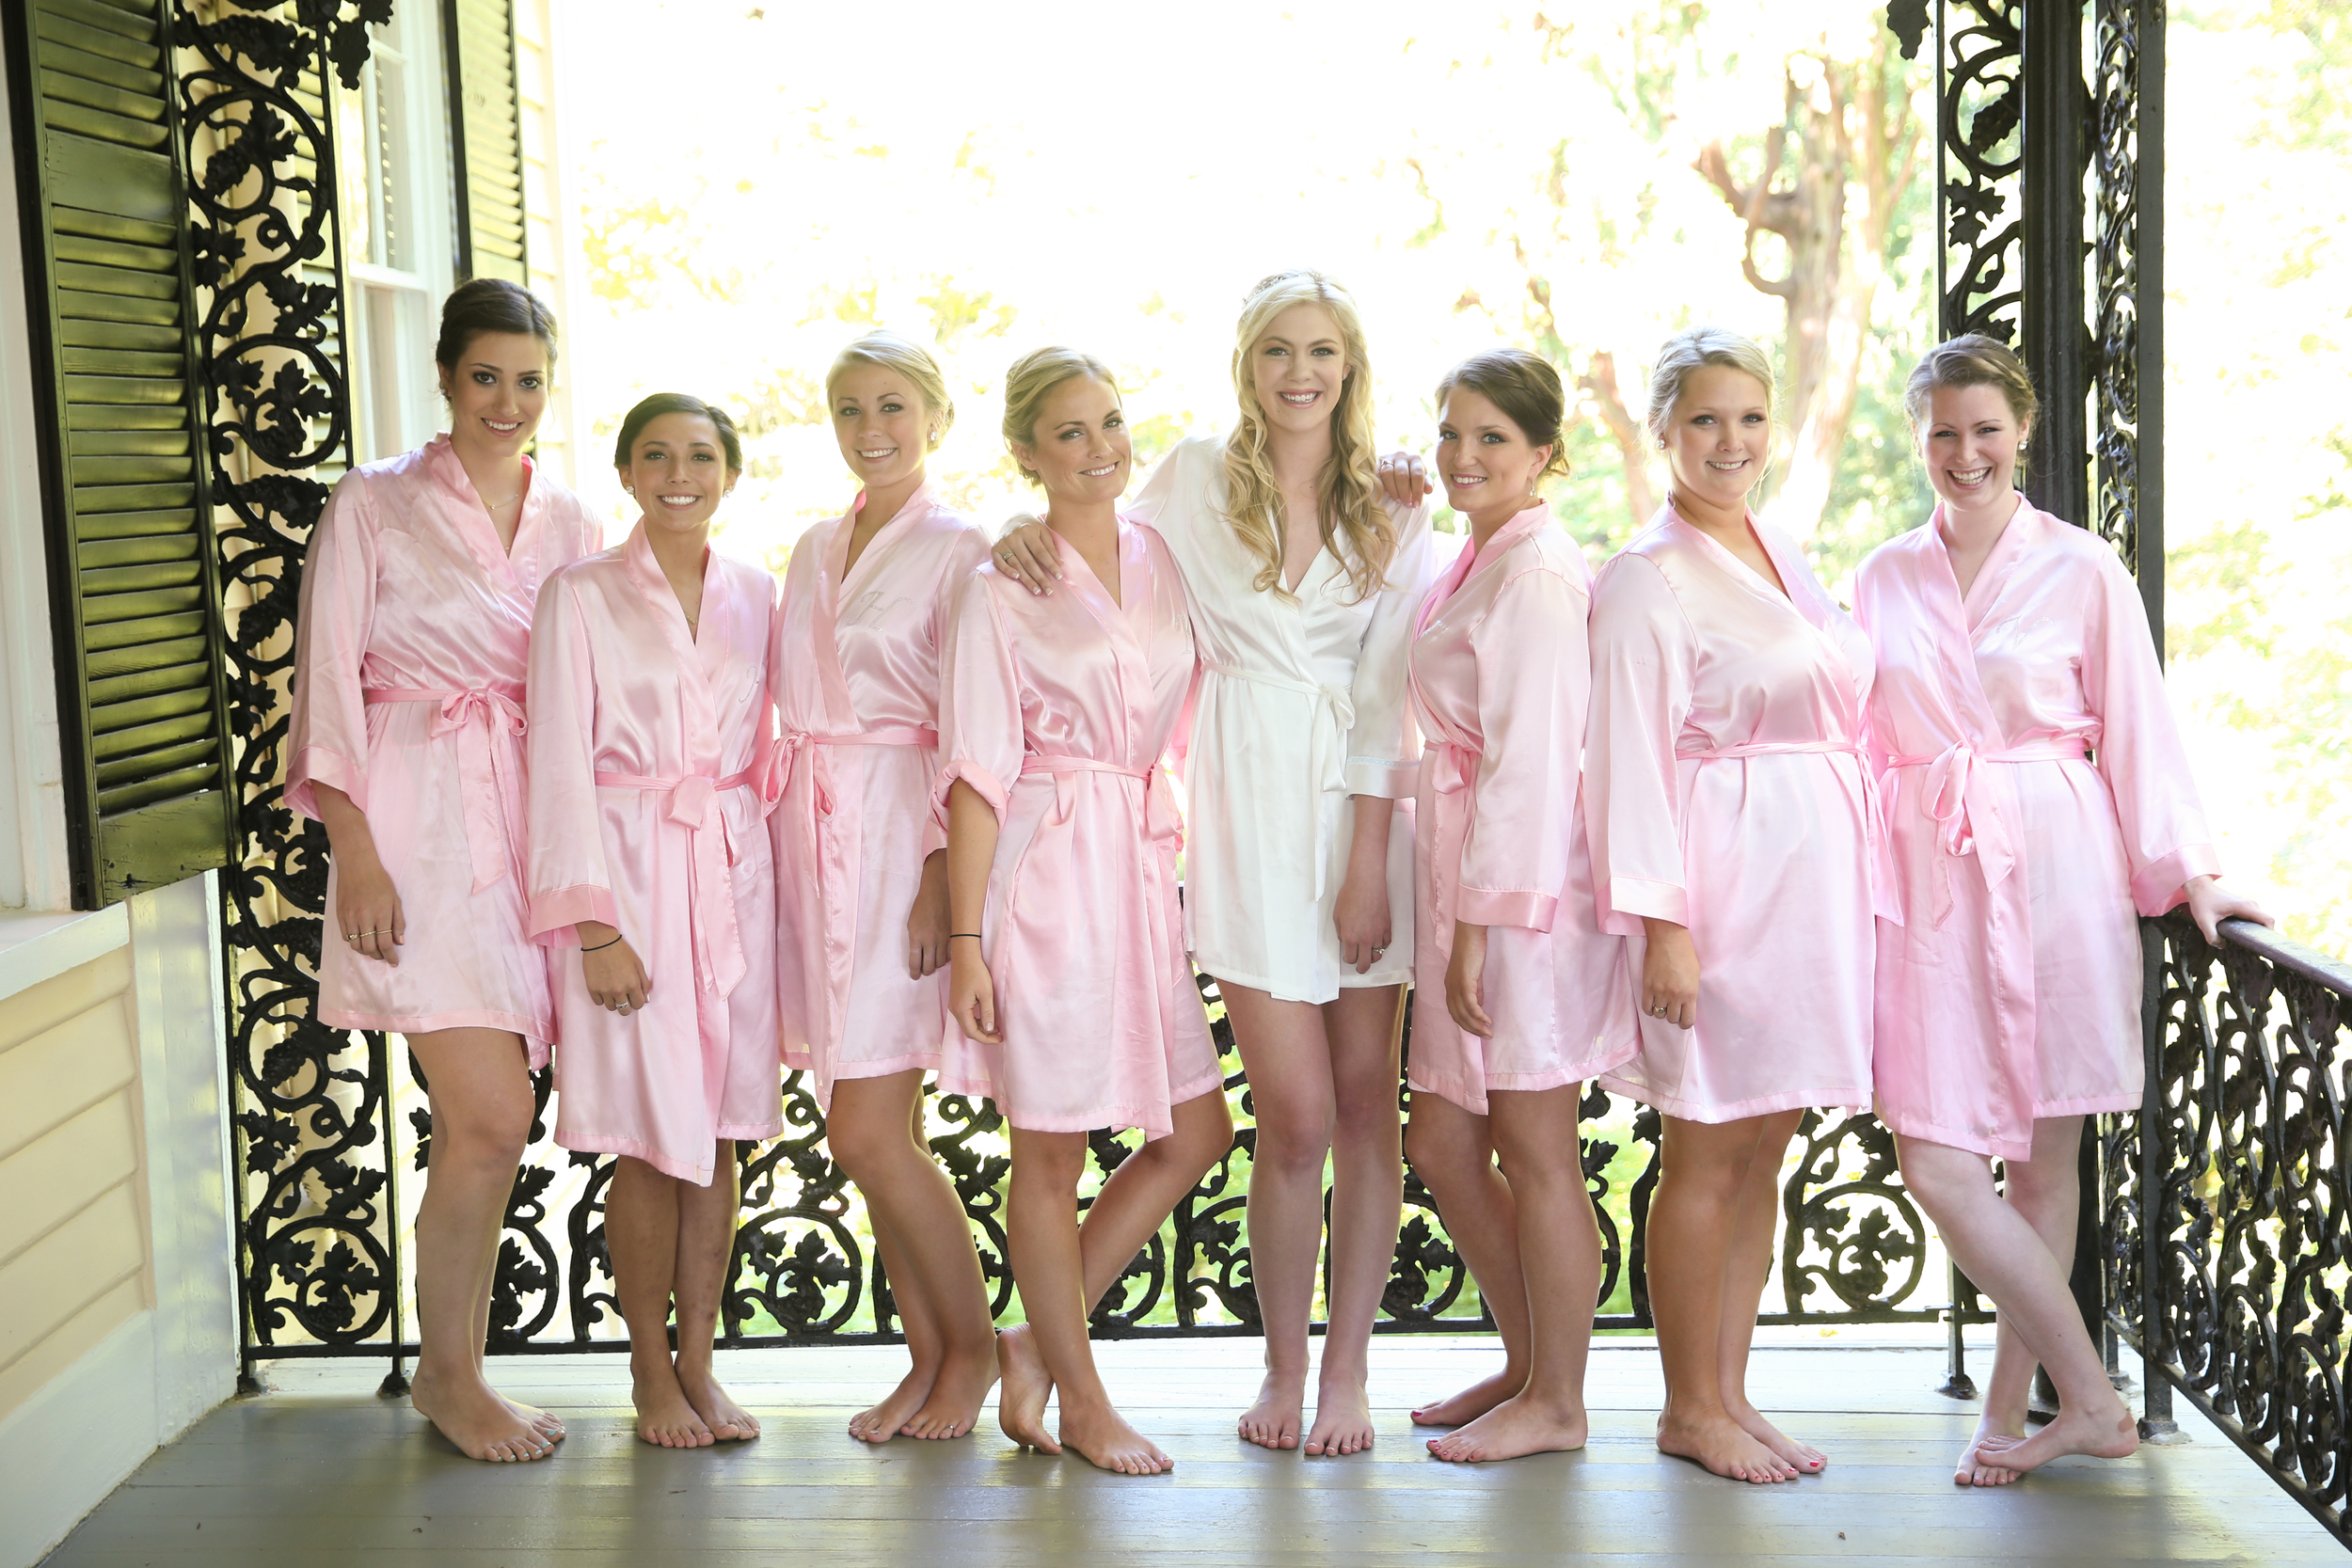 Bridesmaids before Lace House wedding ceremony by Jolie Connor Photography